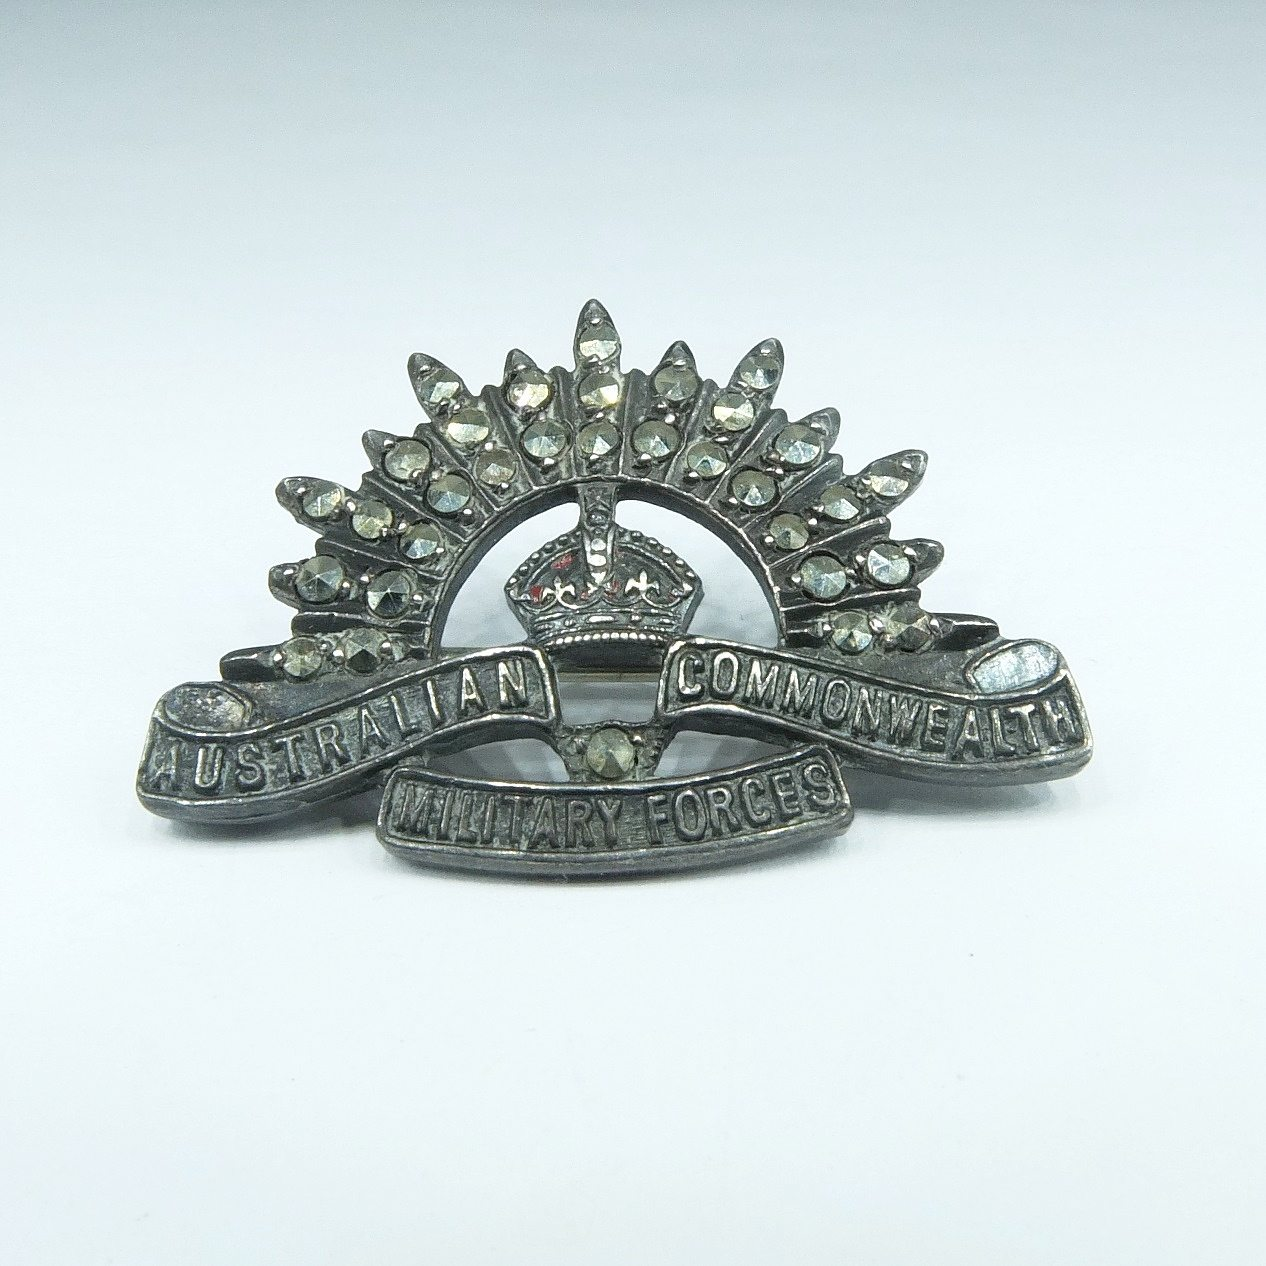 'Sterling Silver and Marcasite Australian Commonwealth Military Forces Badge'